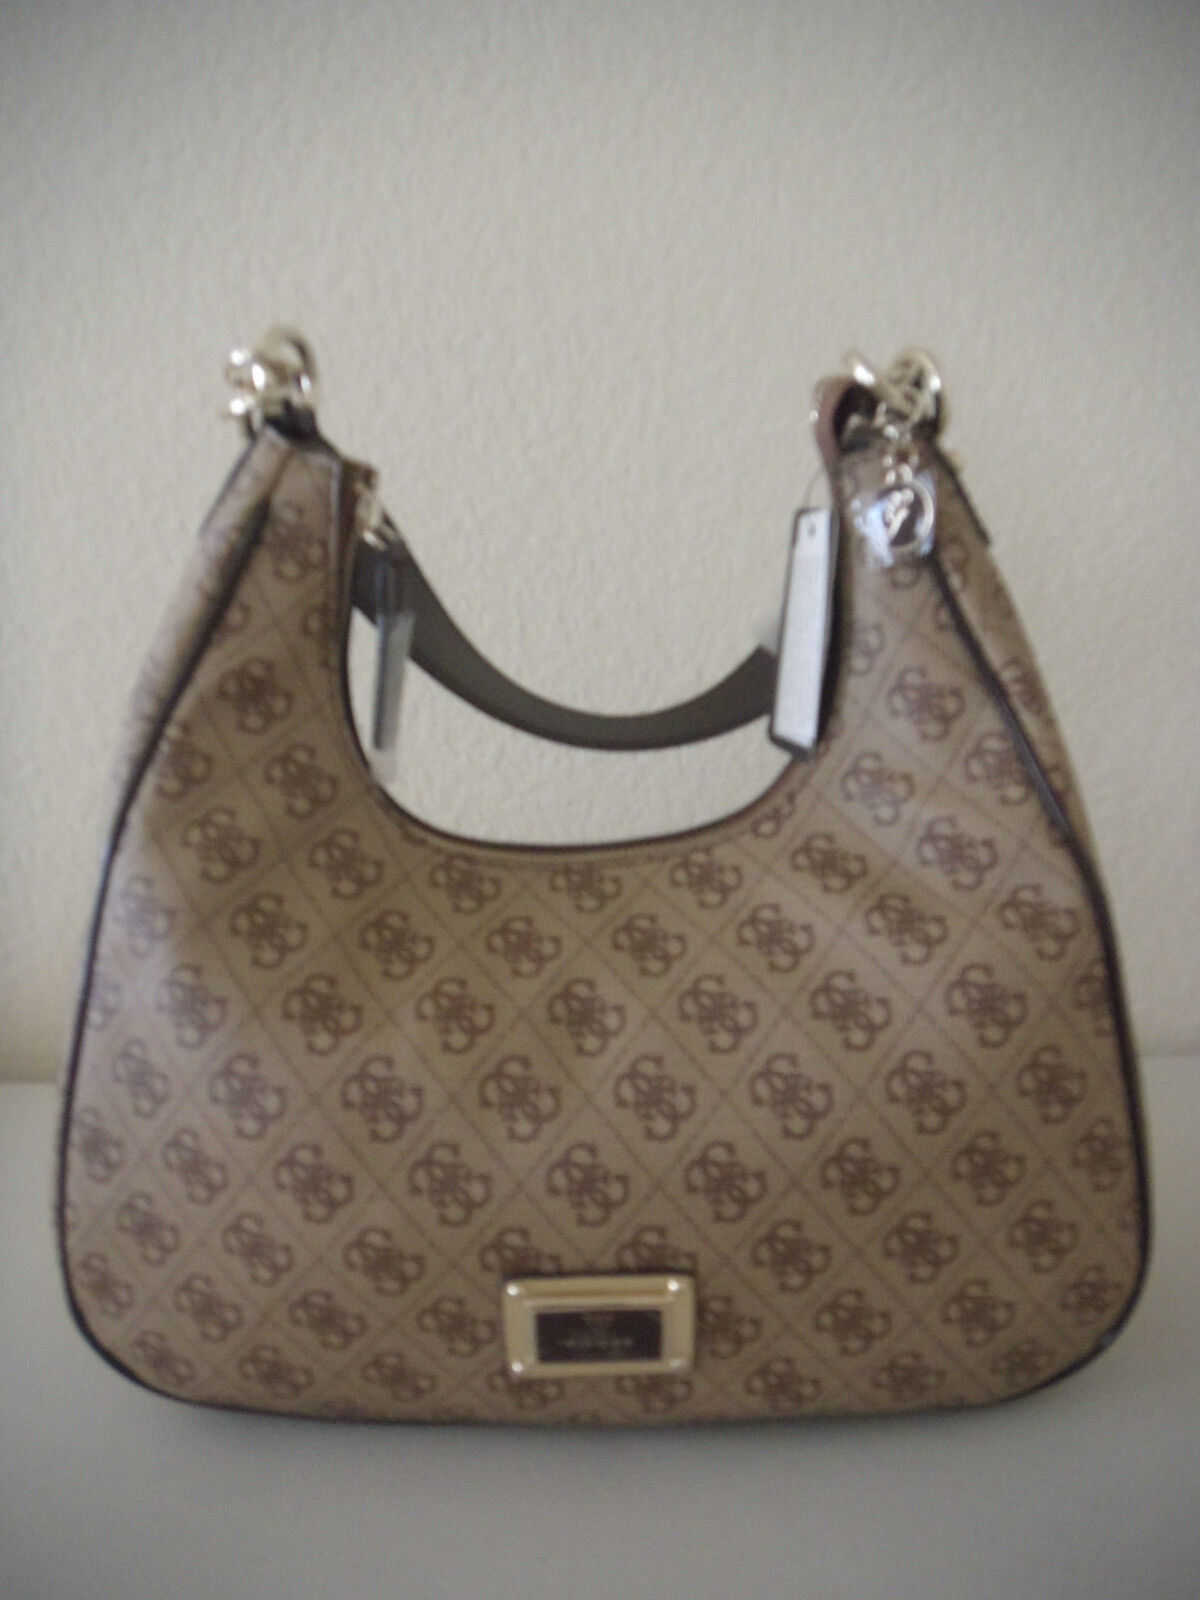 Authentic NWT GUESS Reama Handbag with Style # SG425802 COFFEE